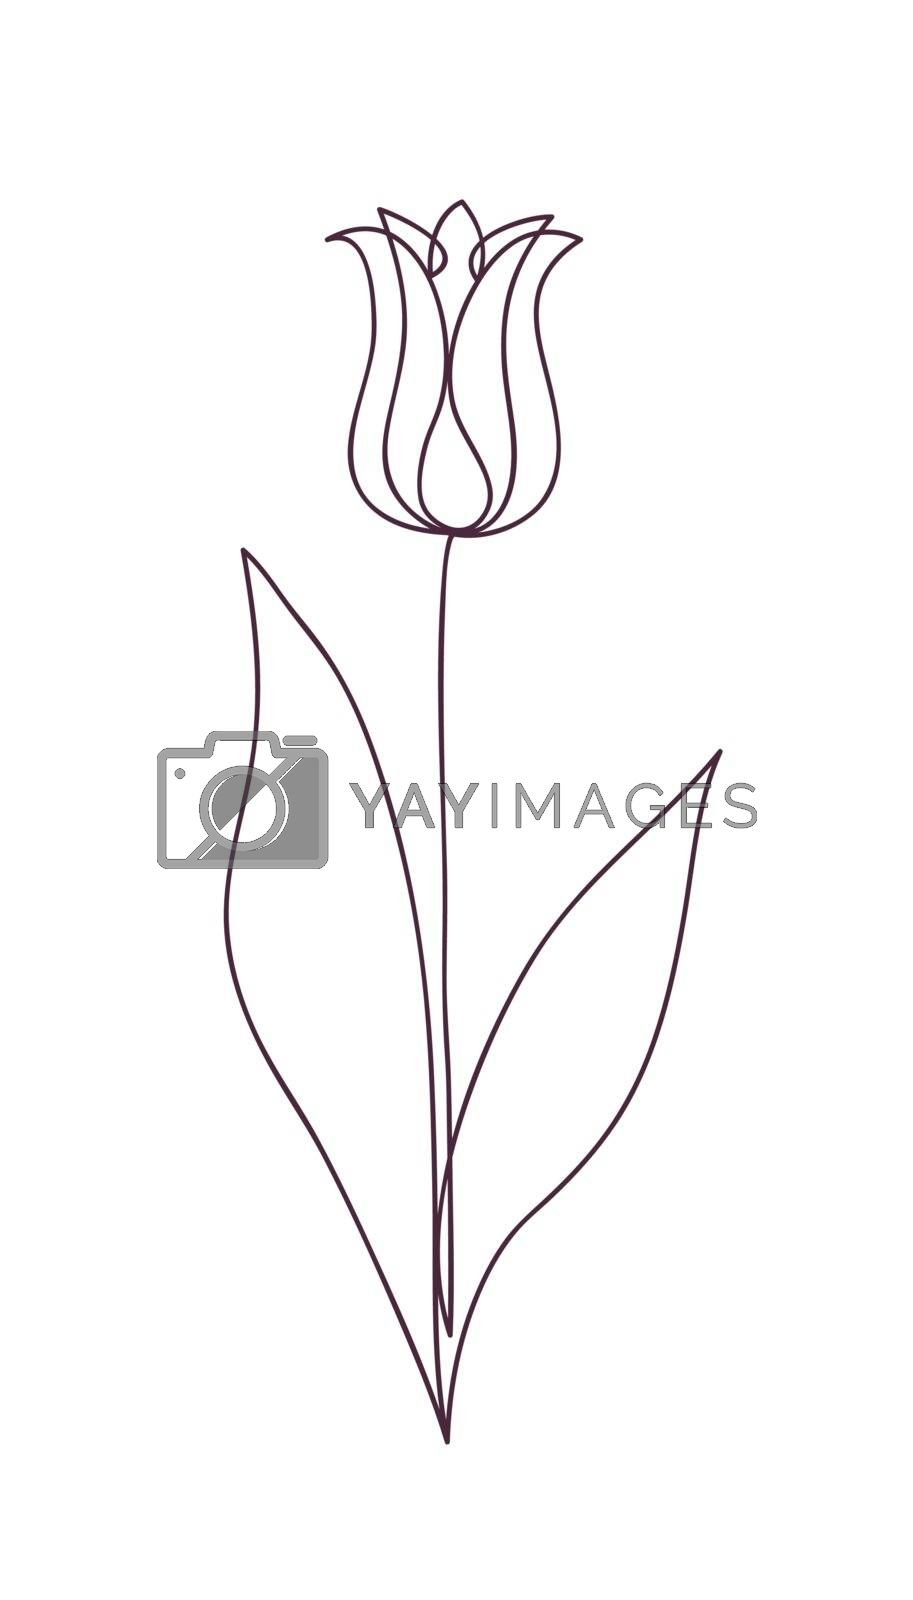 Beautiful tulip flower. Line art concept design. Continuous line drawing. Stylized flower symbol. Vector illustration.